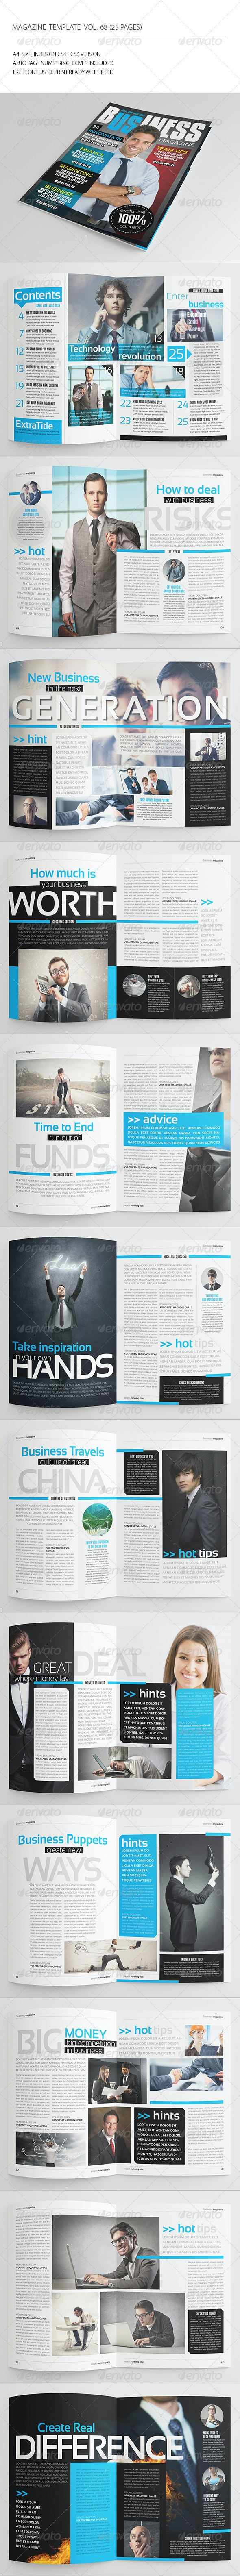 25 Pages Business Magazine Vol68 - Magazines Print Templates